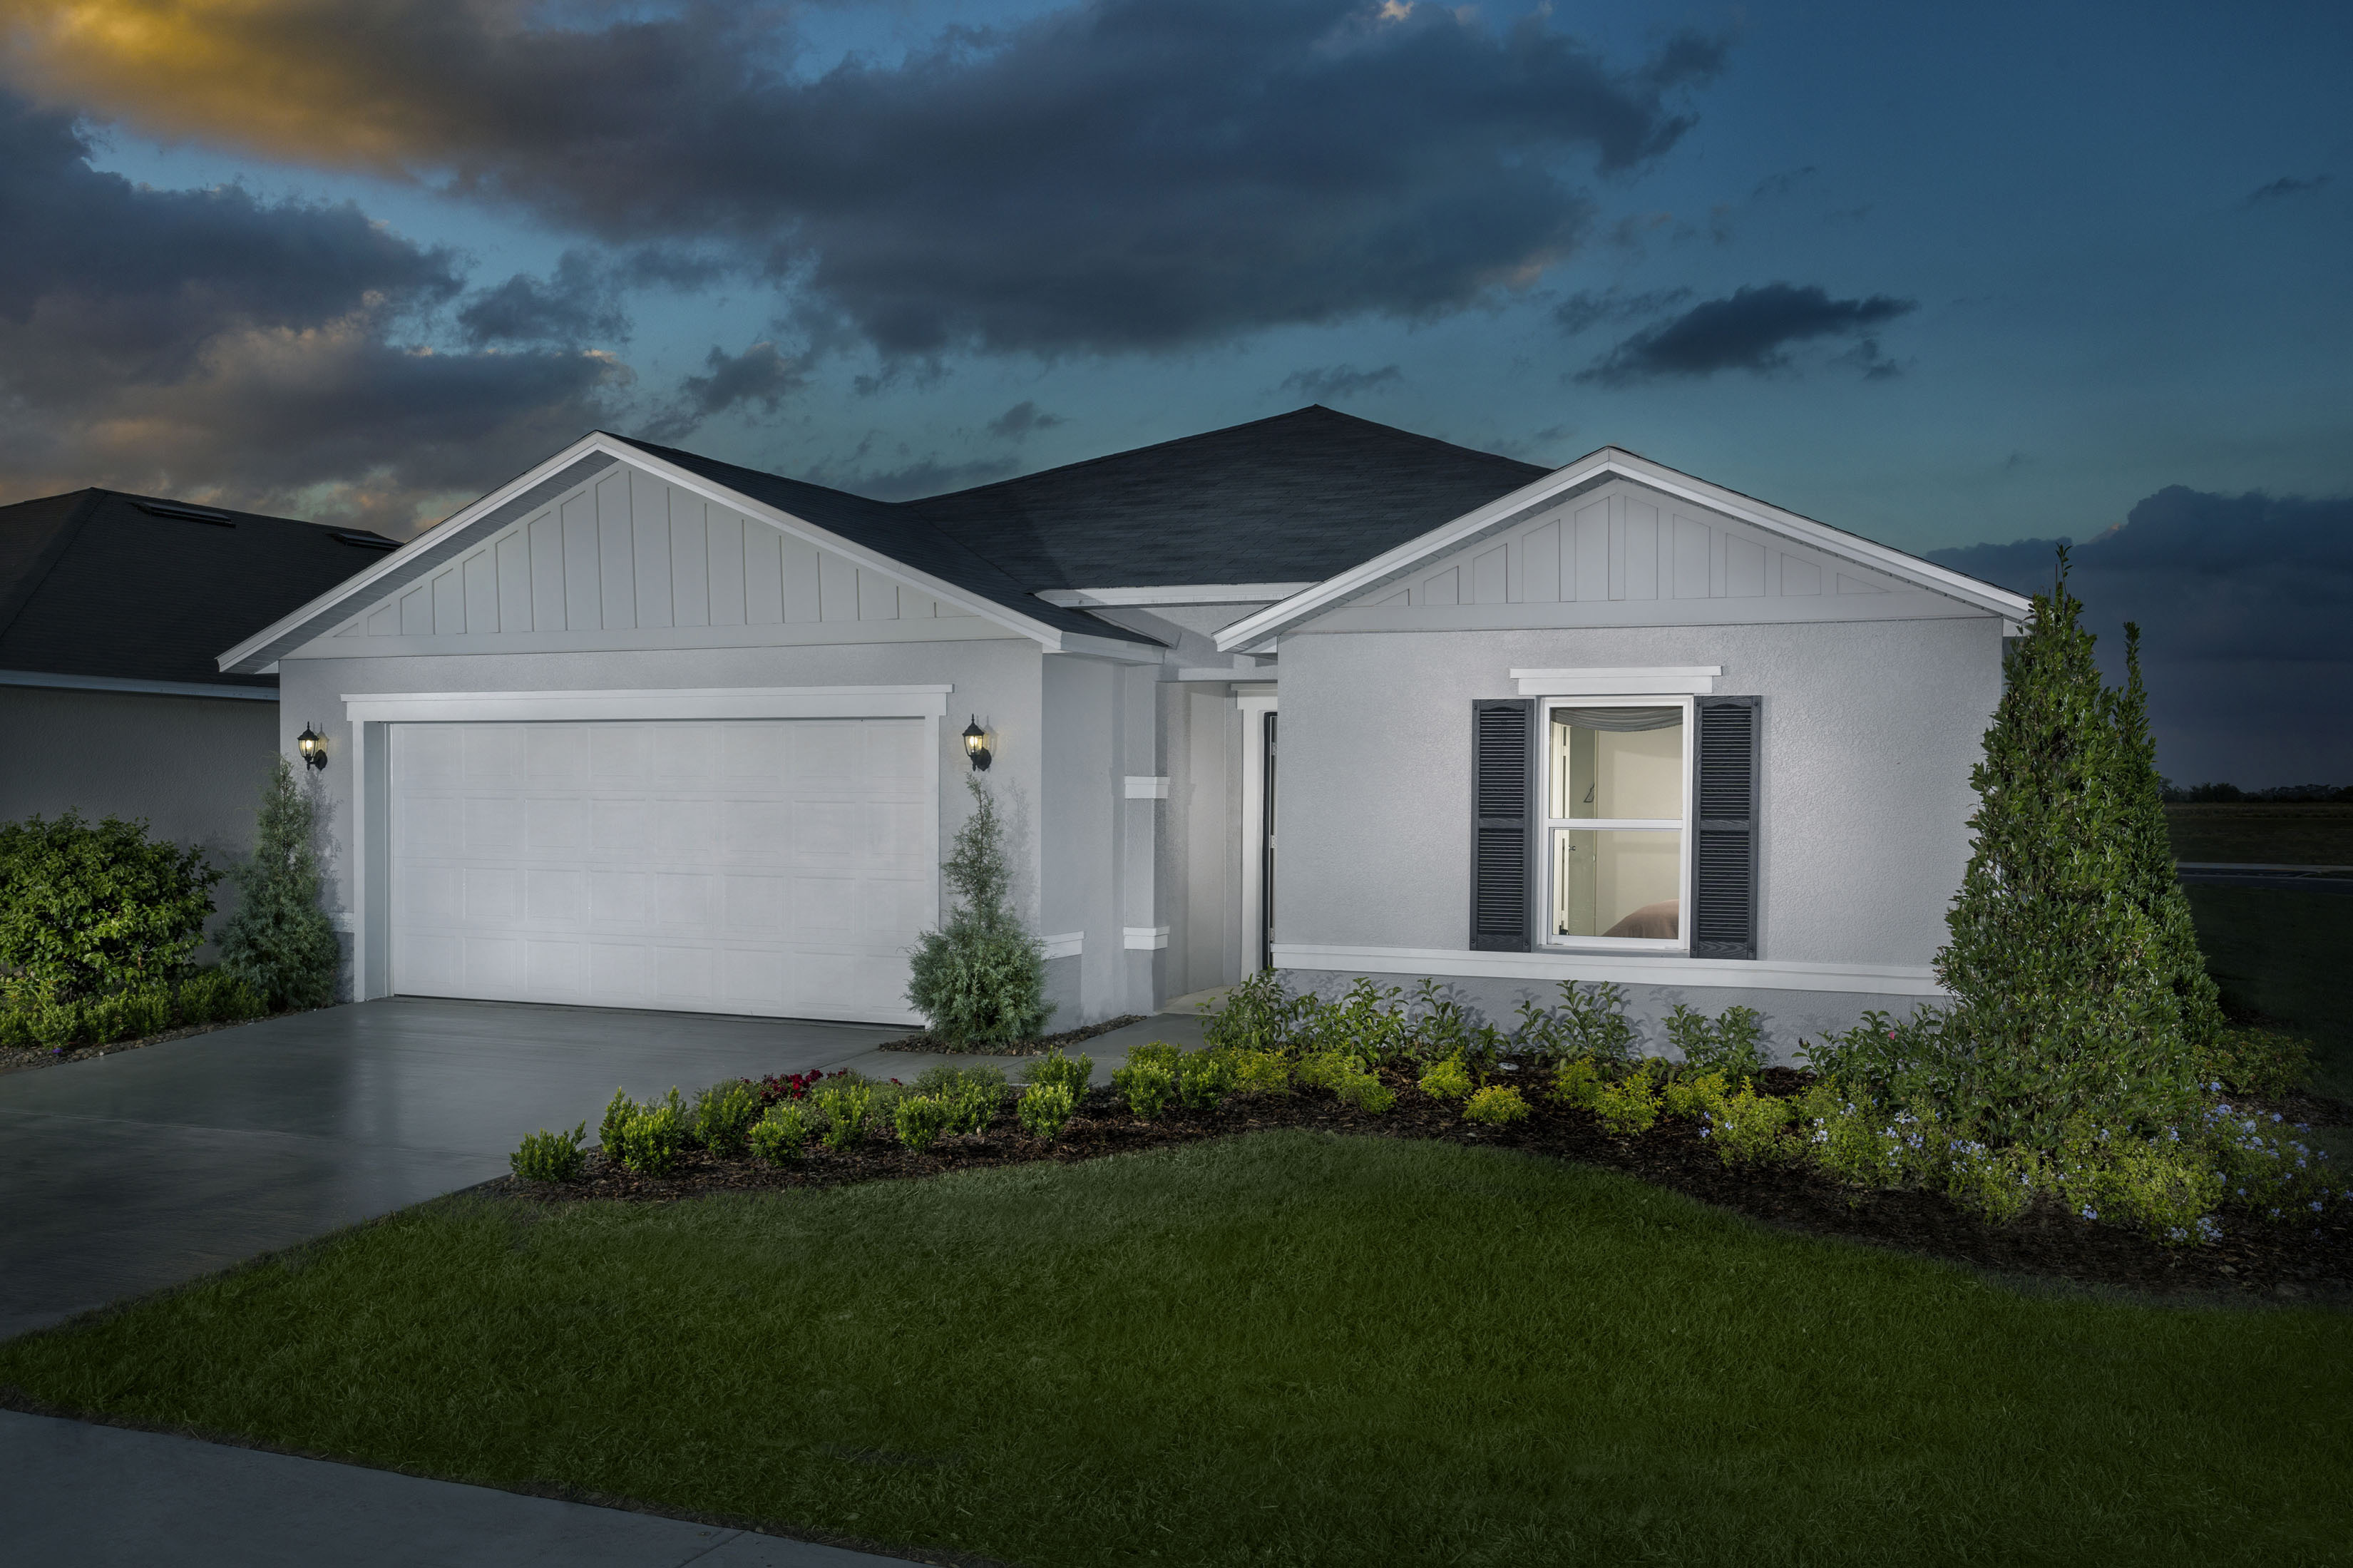 KB Home Announces the Grand Opening of Cayden Reserve in Lakeland ...